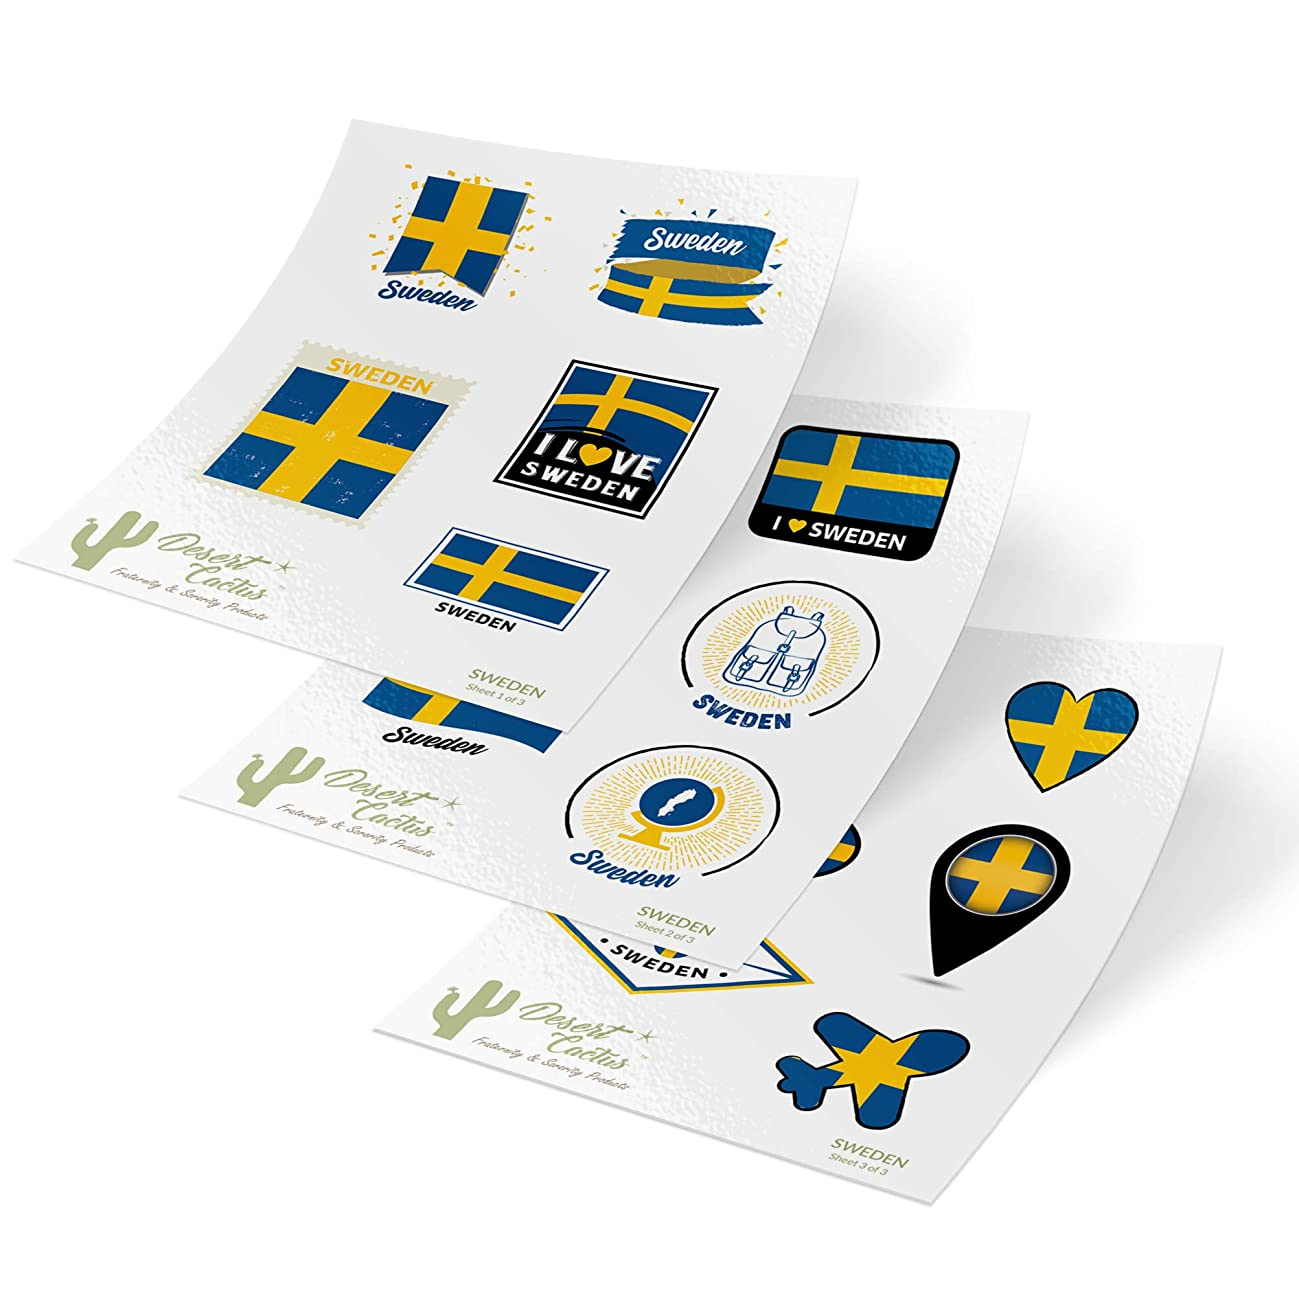 Sweden Country Flag Stickers Decals 3 Sheets 17 Total Pieces Kids Logo Scrapbook Car Vinyl Window Bumper Laptop 3 Sheets